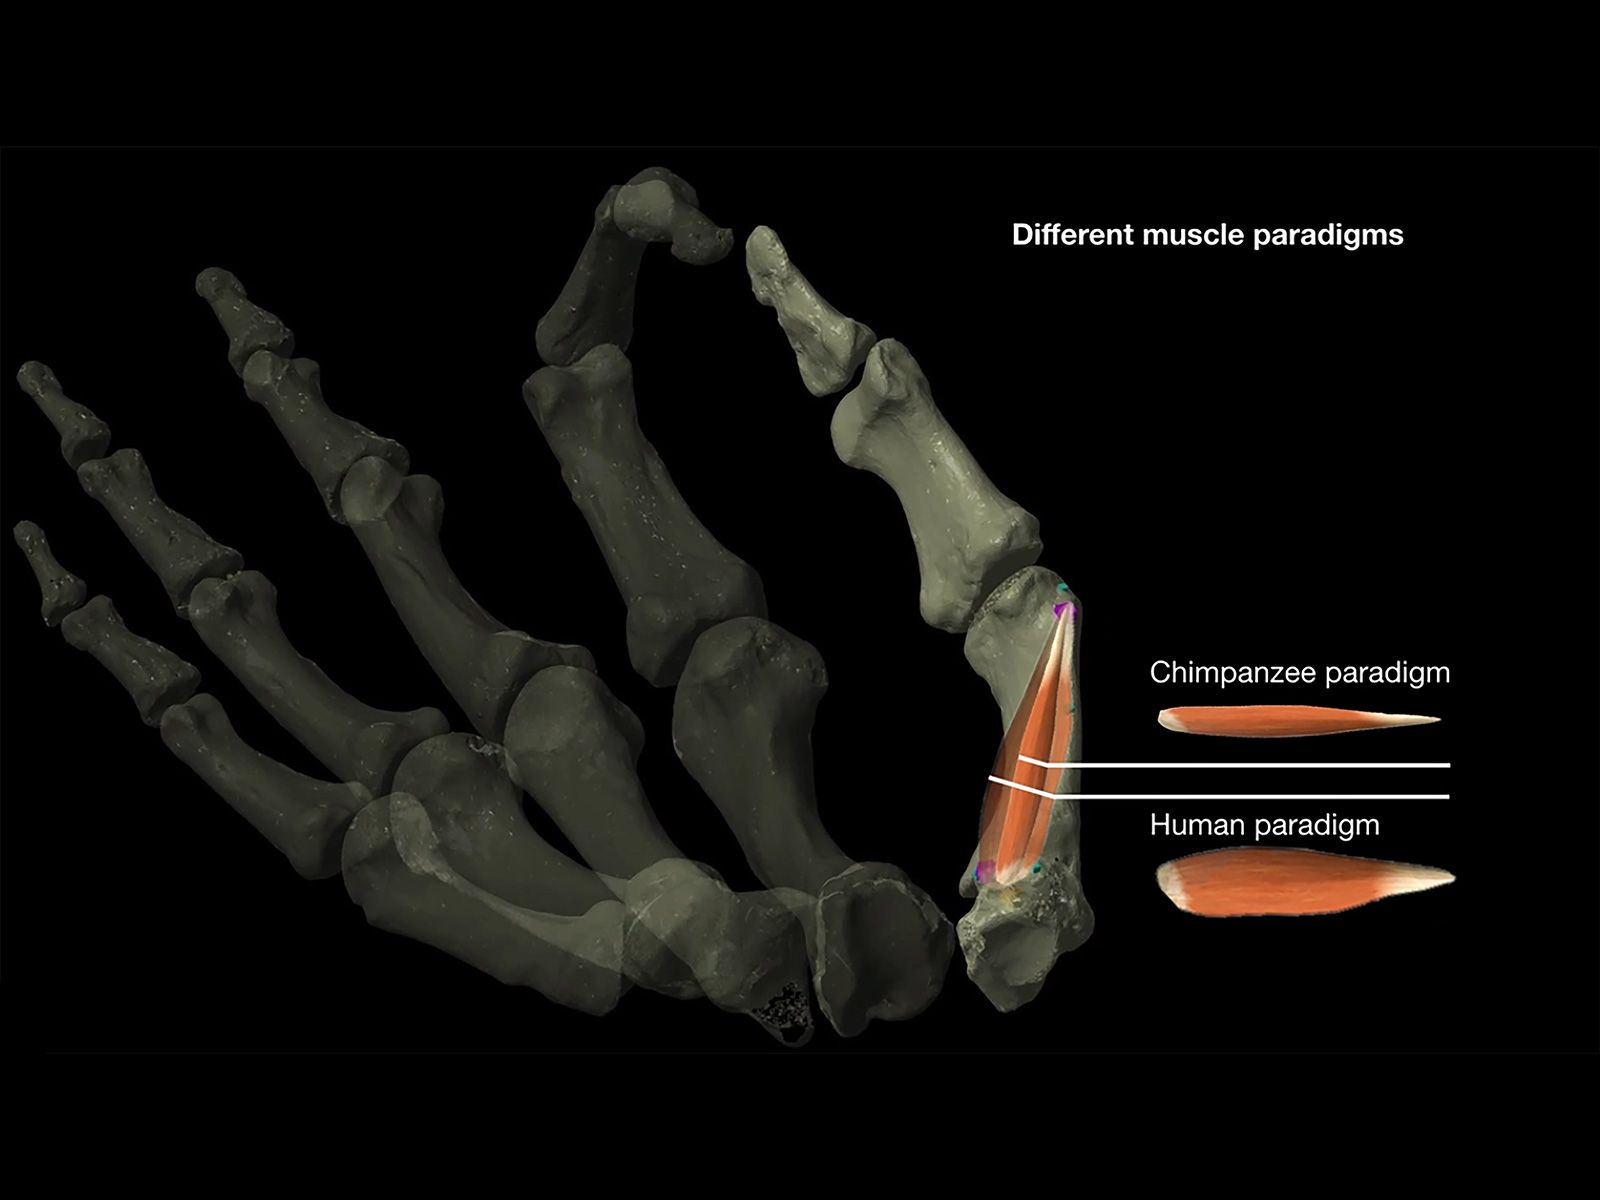 How Dexterous Thumbs May Have Helped Shape Evolution Two Million Years Ago